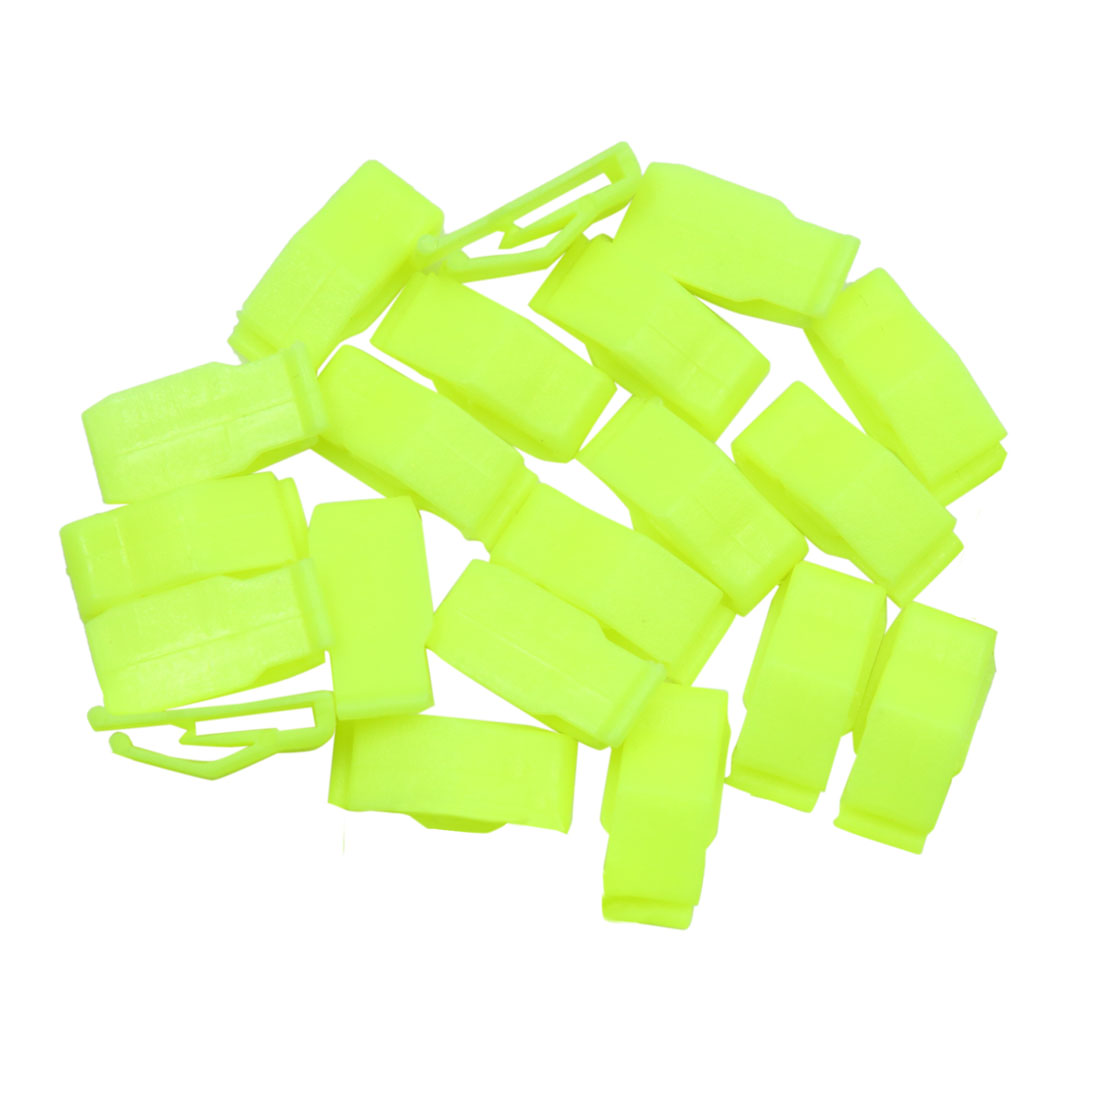 20pcs Green Car Console Plastic Retainer Dashboard Moulding Trim Clip Fastener - image 2 de 2